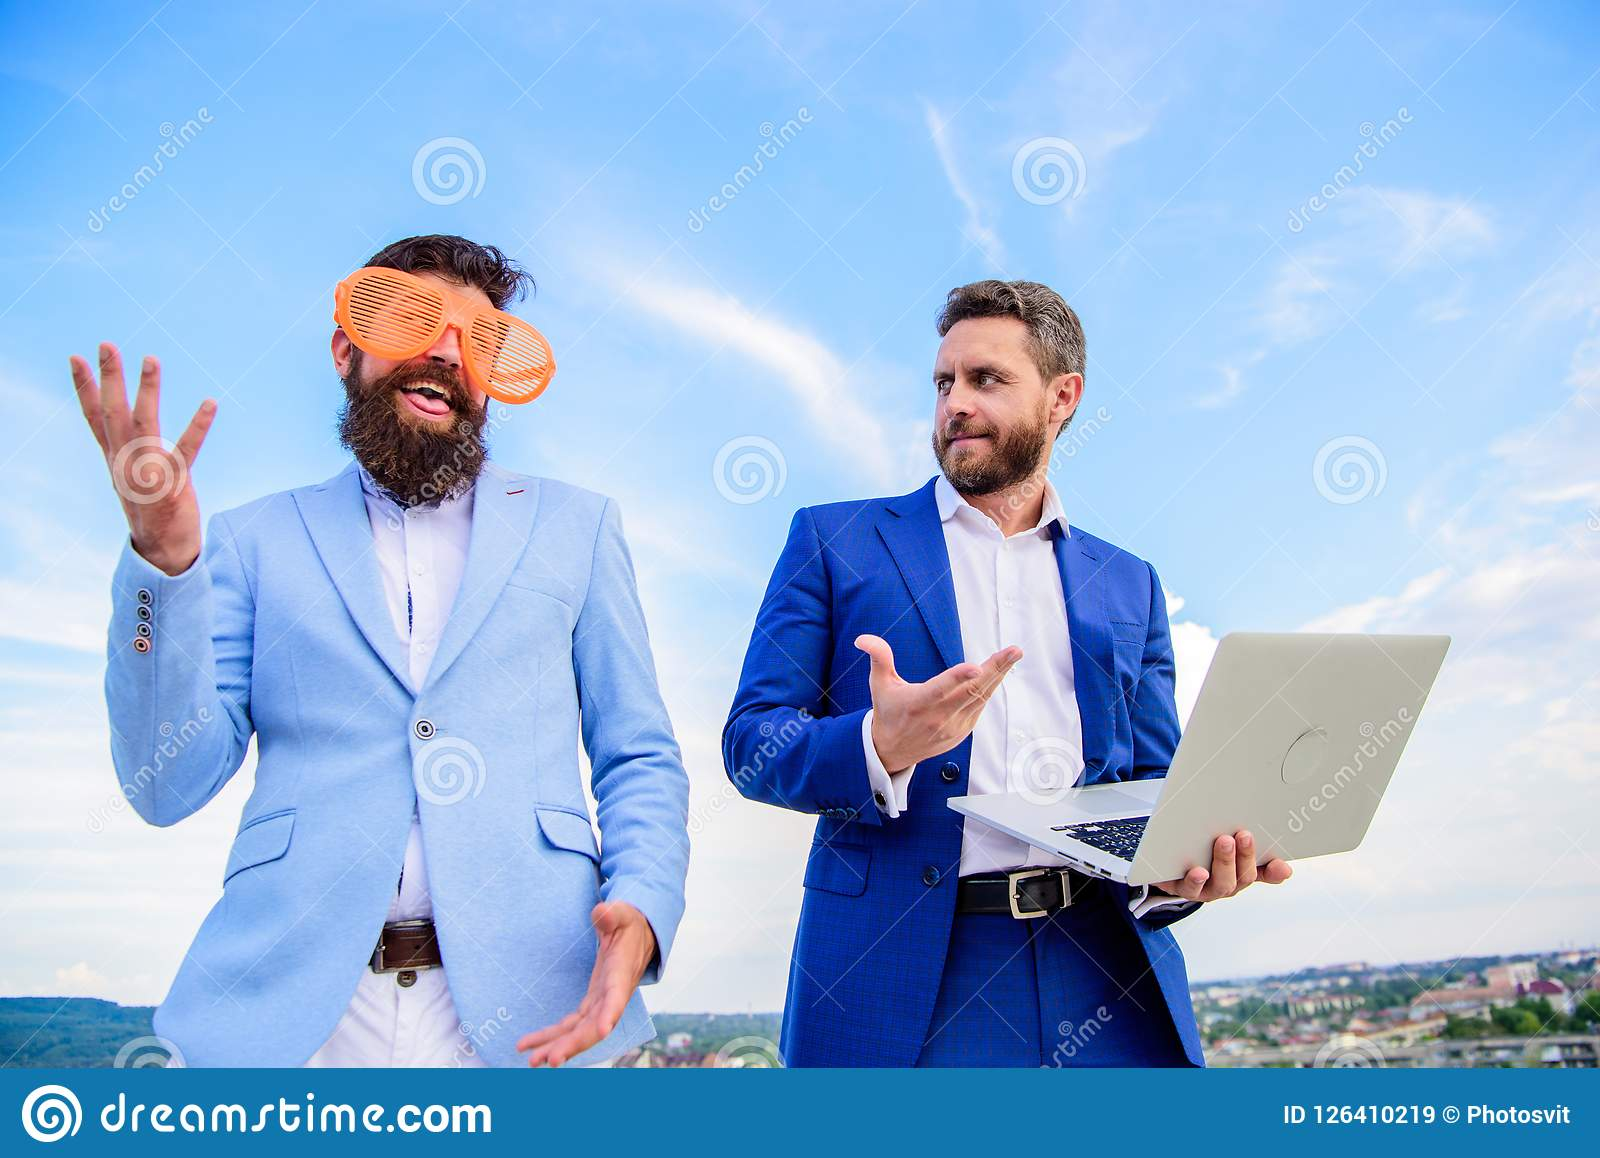 Businessman with laptop serious while business partner ridiculous glasses looks funny. How to stop playing at